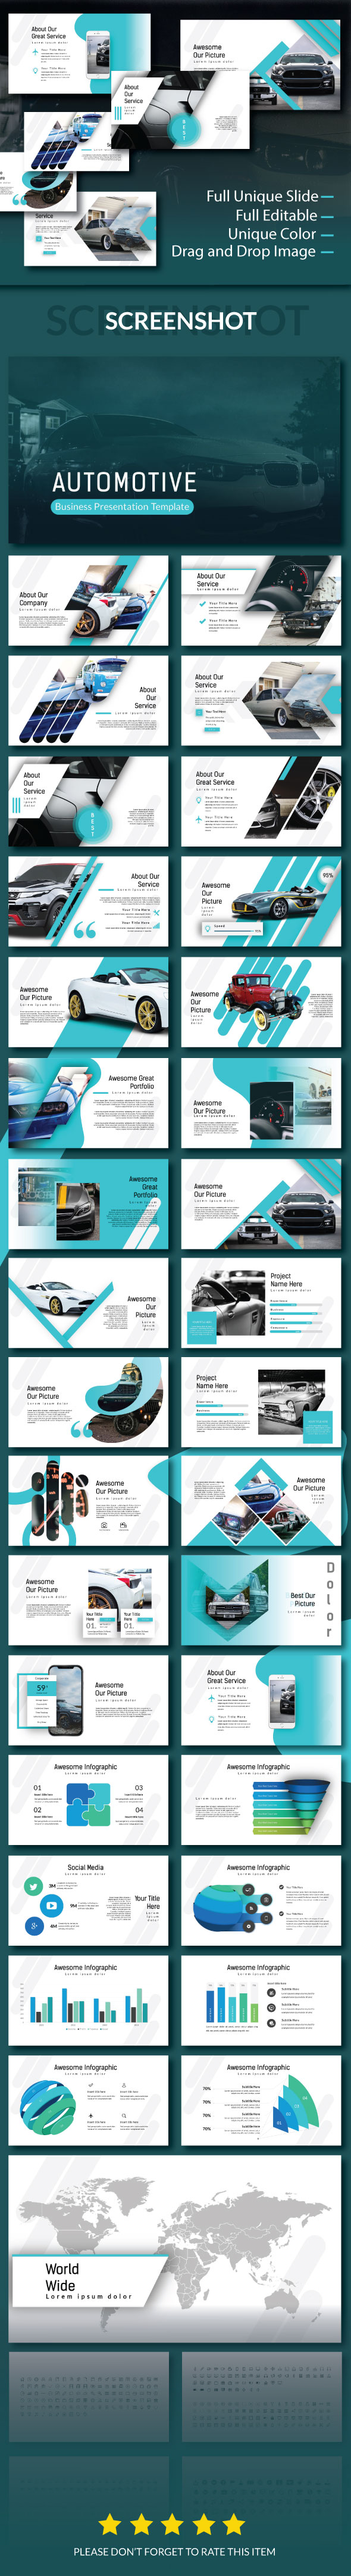 Automotive powerpoint template by spesifikstudio graphicriver automotive powerpoint template powerpoint templates presentation templates toneelgroepblik Images